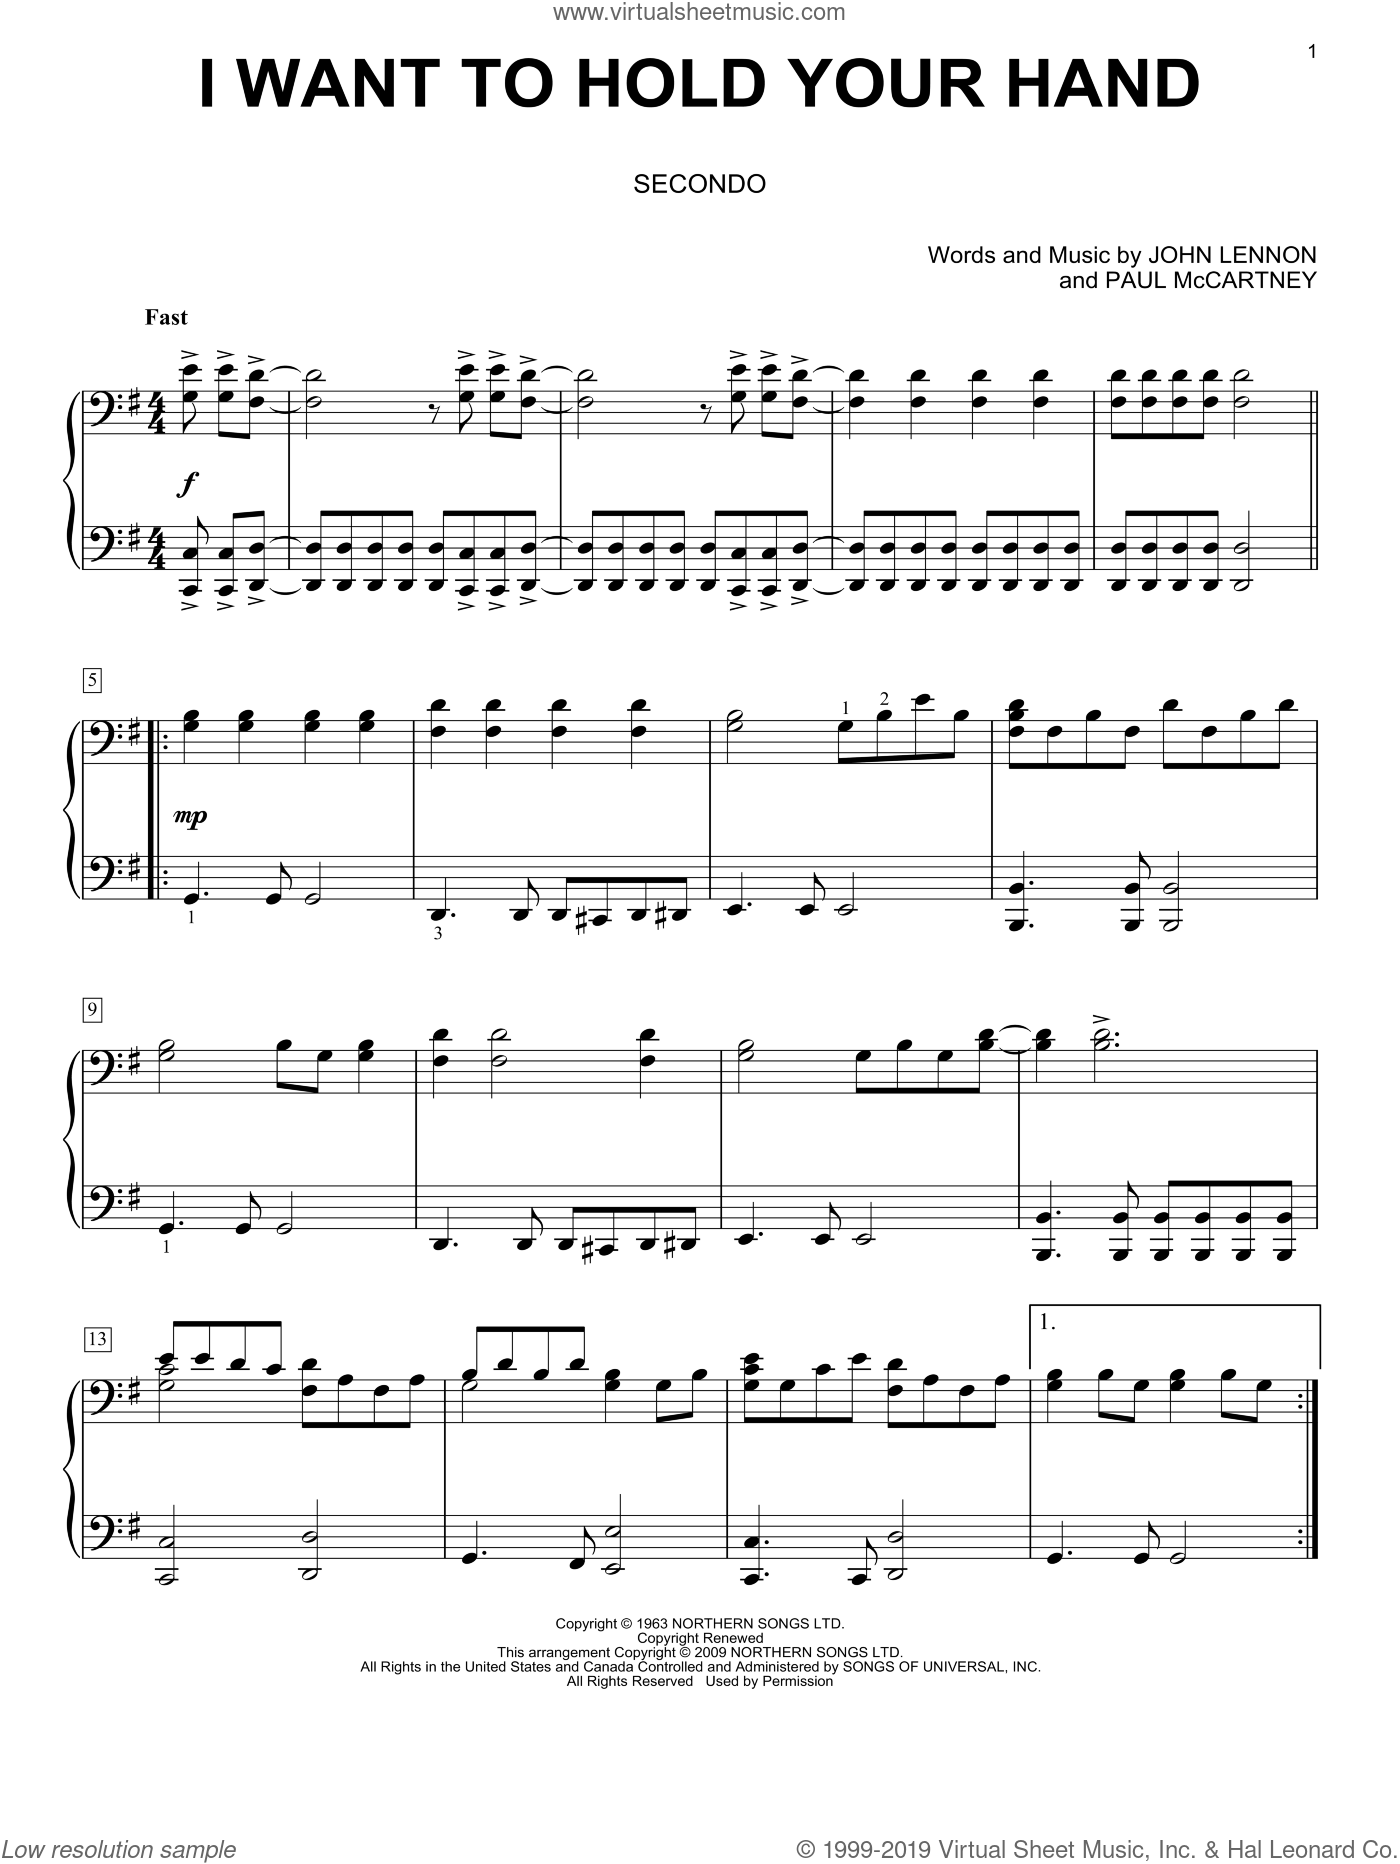 I Want To Hold Your Hand sheet music for piano four hands by The Beatles, John Lennon and Paul McCartney, intermediate